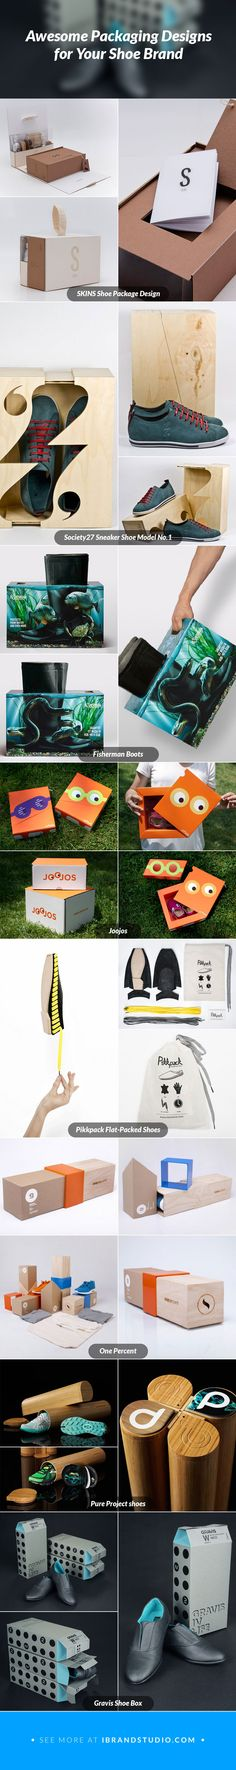 Awesome Packaging Designs for your Shoe Brand, Get the inspiration today! #packaging